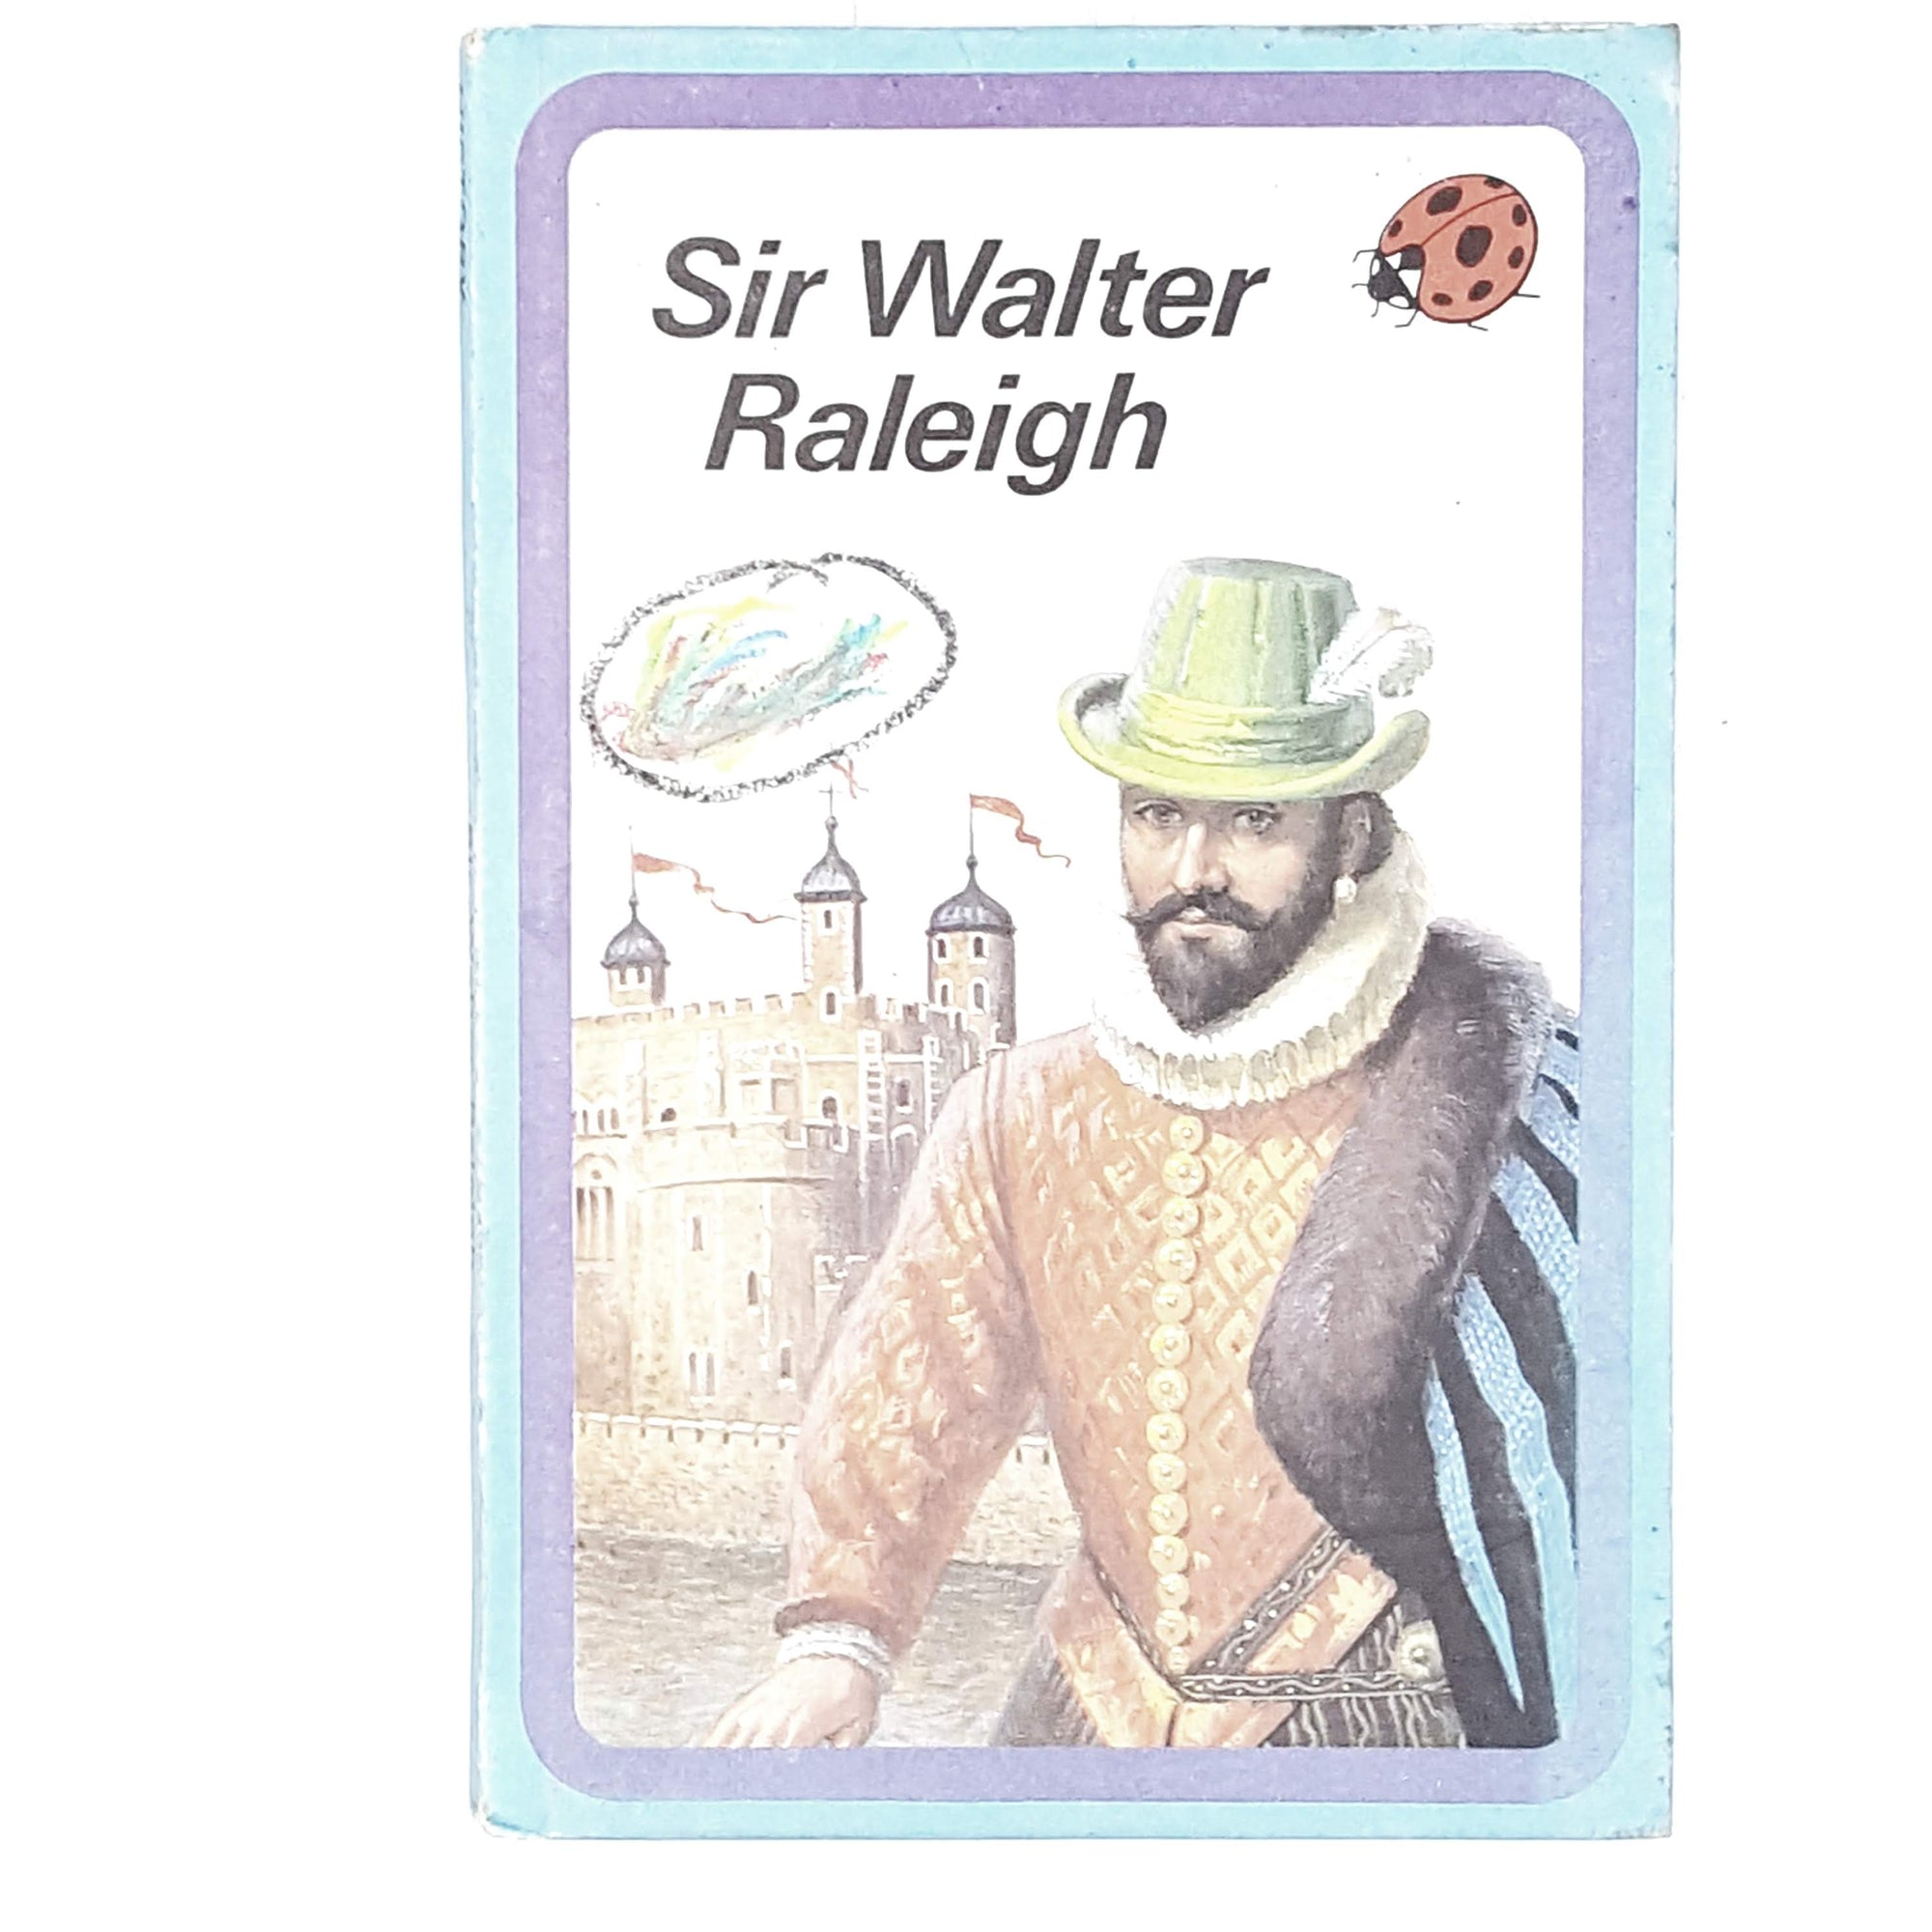 Sir Walter Raleigh by L. du Garde Peach 1957